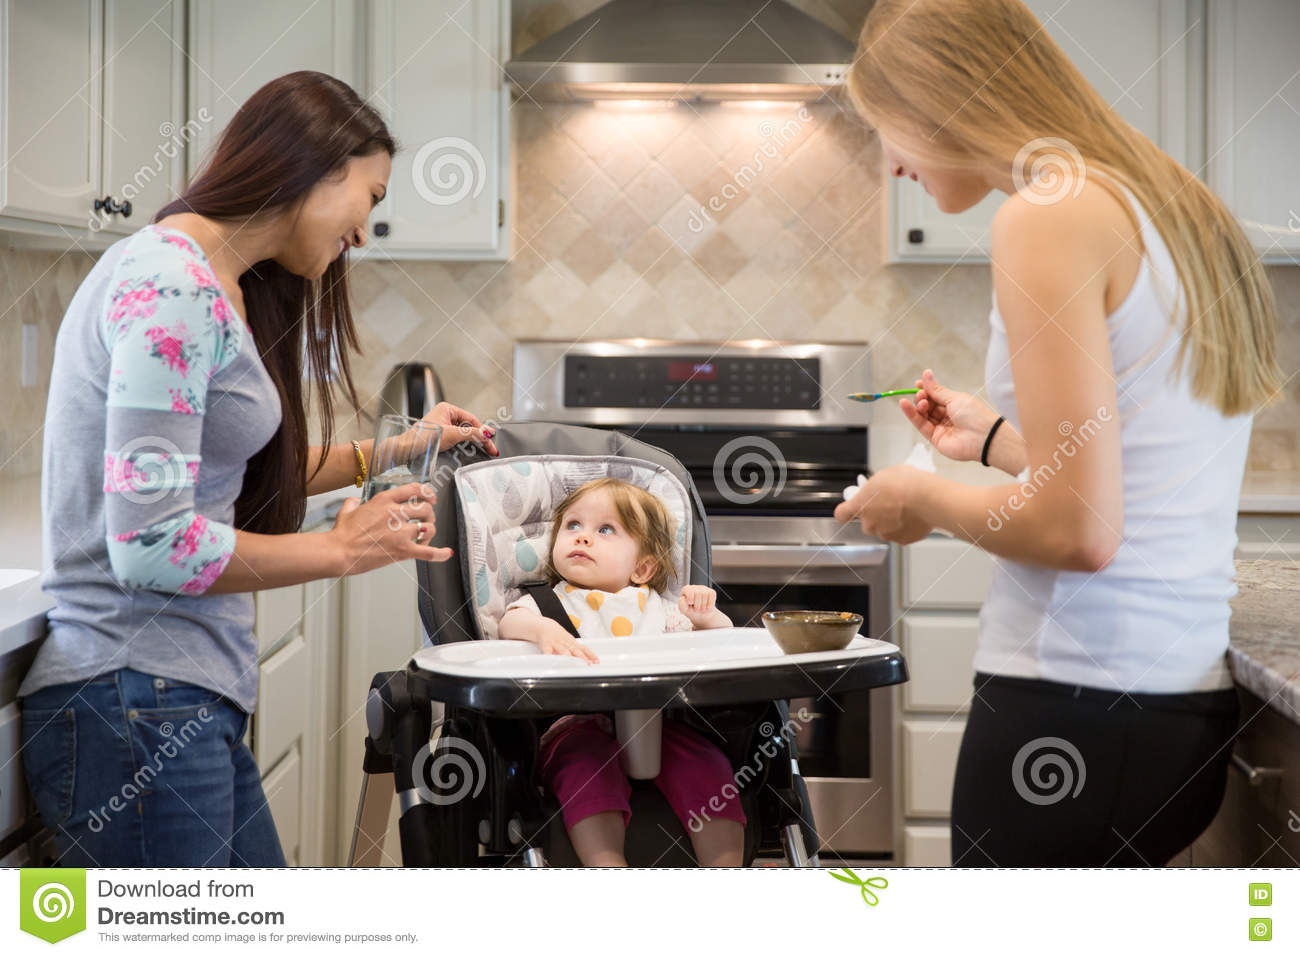 Two Young Women Feeding Little Girl In Highchair. Stock Photo ... b586e13522